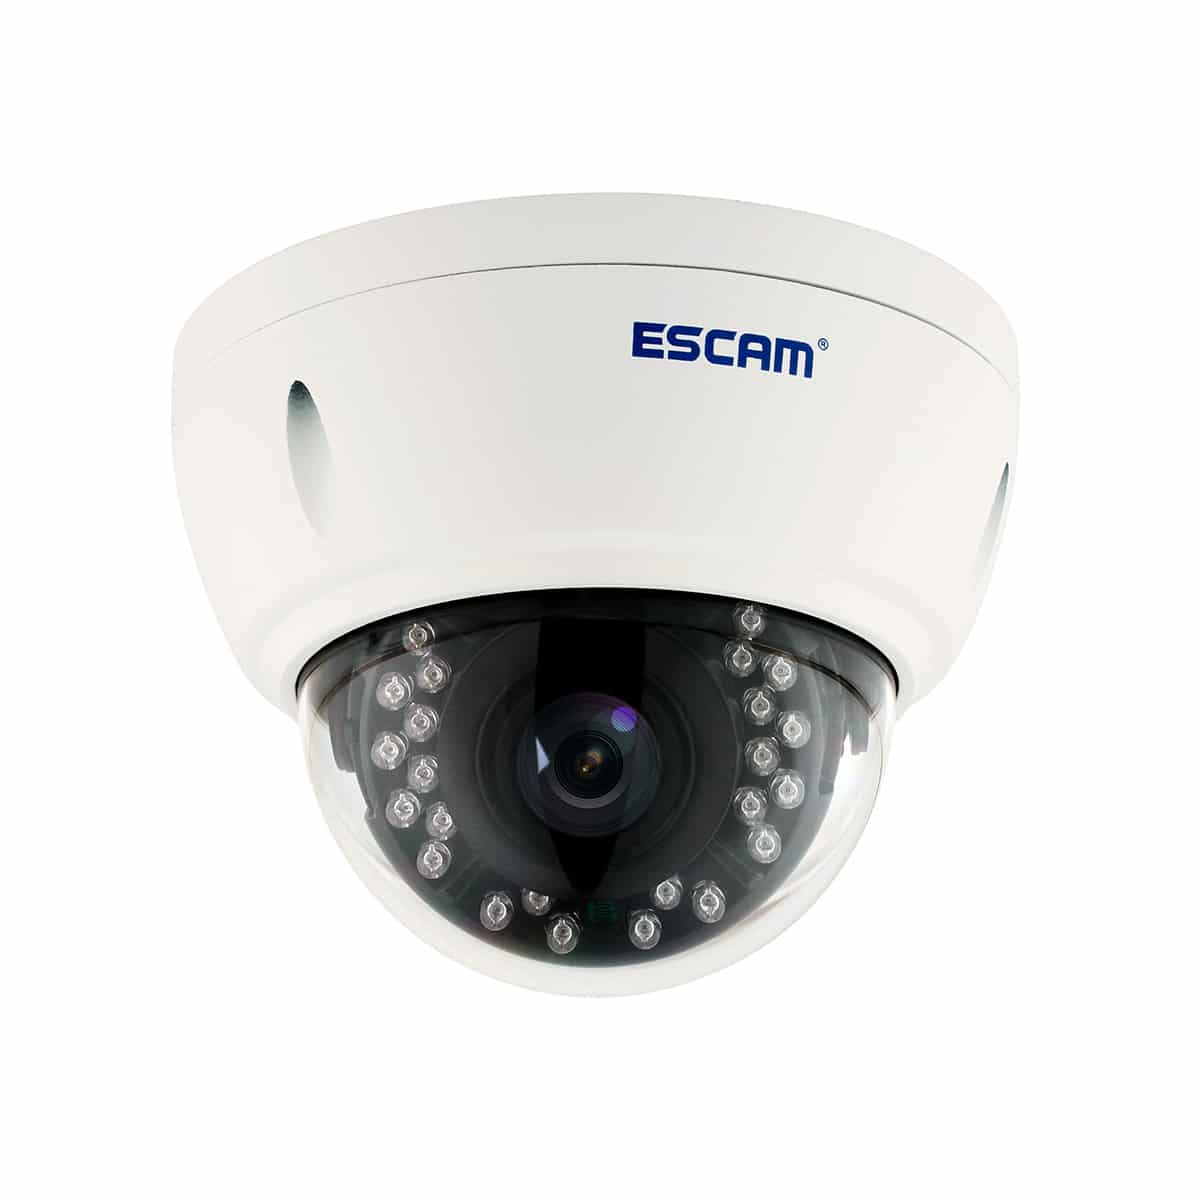 Escam Ip Camera QD420 2